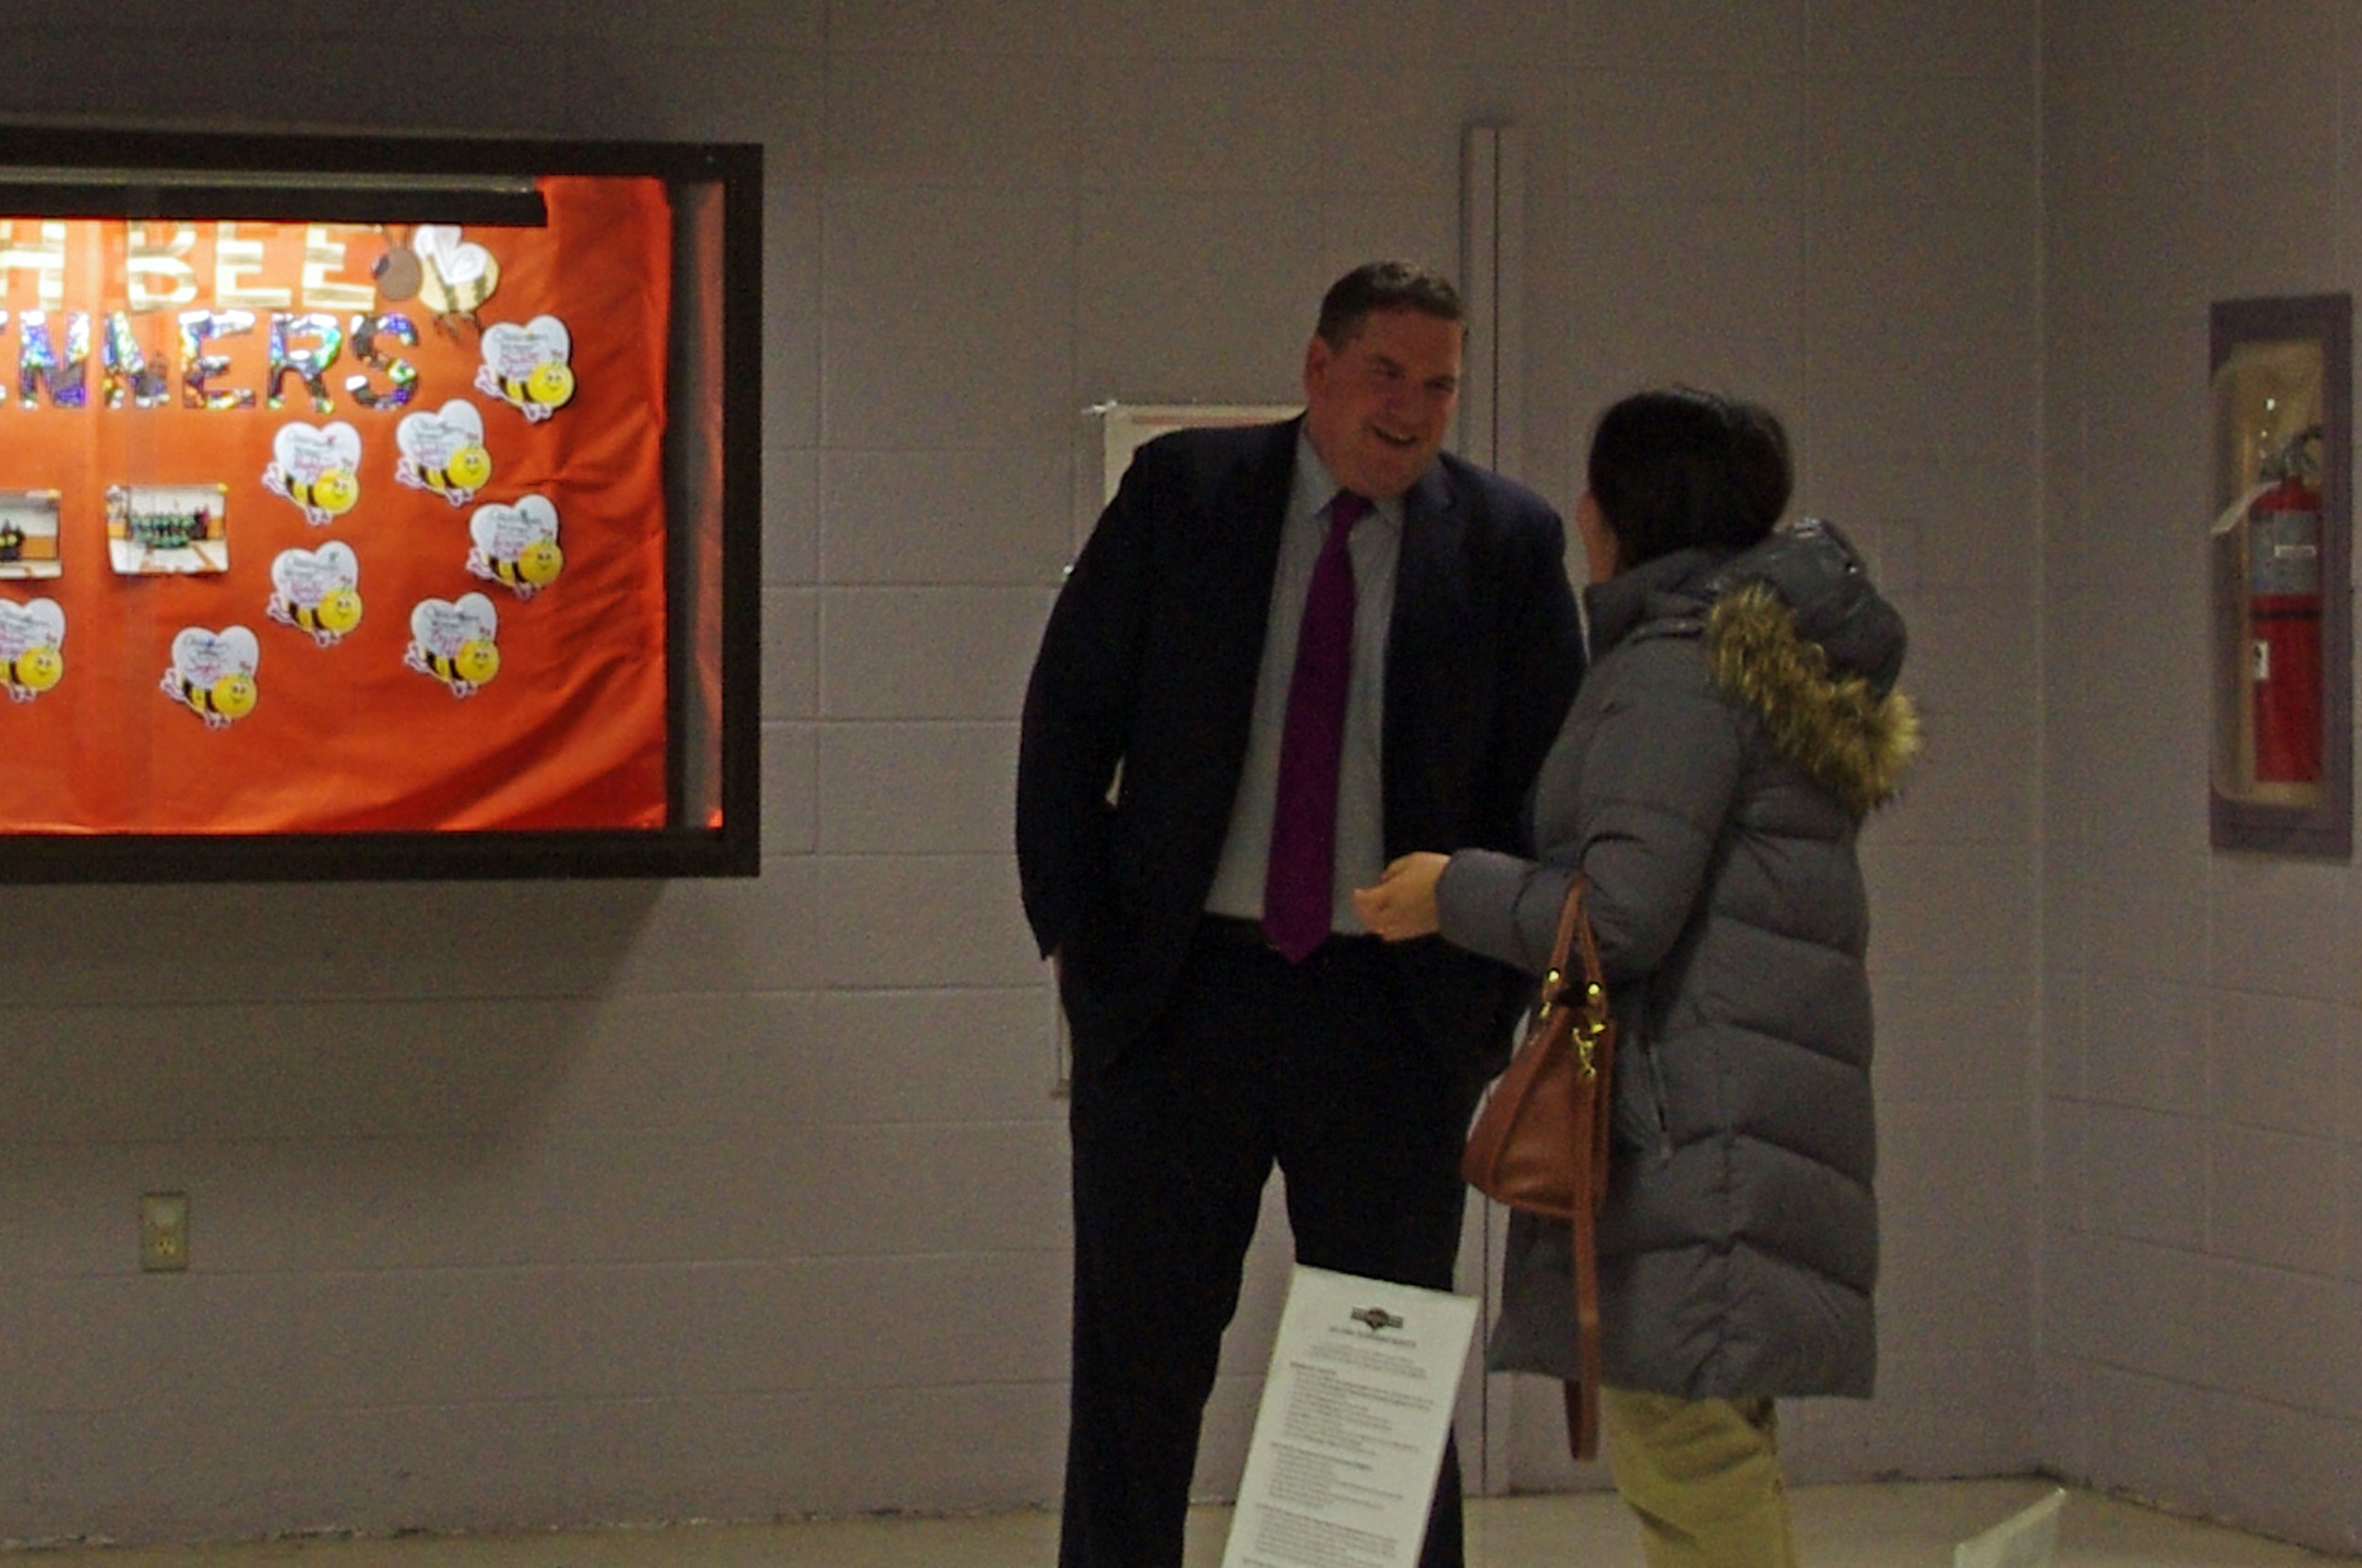 Principal Bill Black of West Broadway Middle School catches up with a neighbor